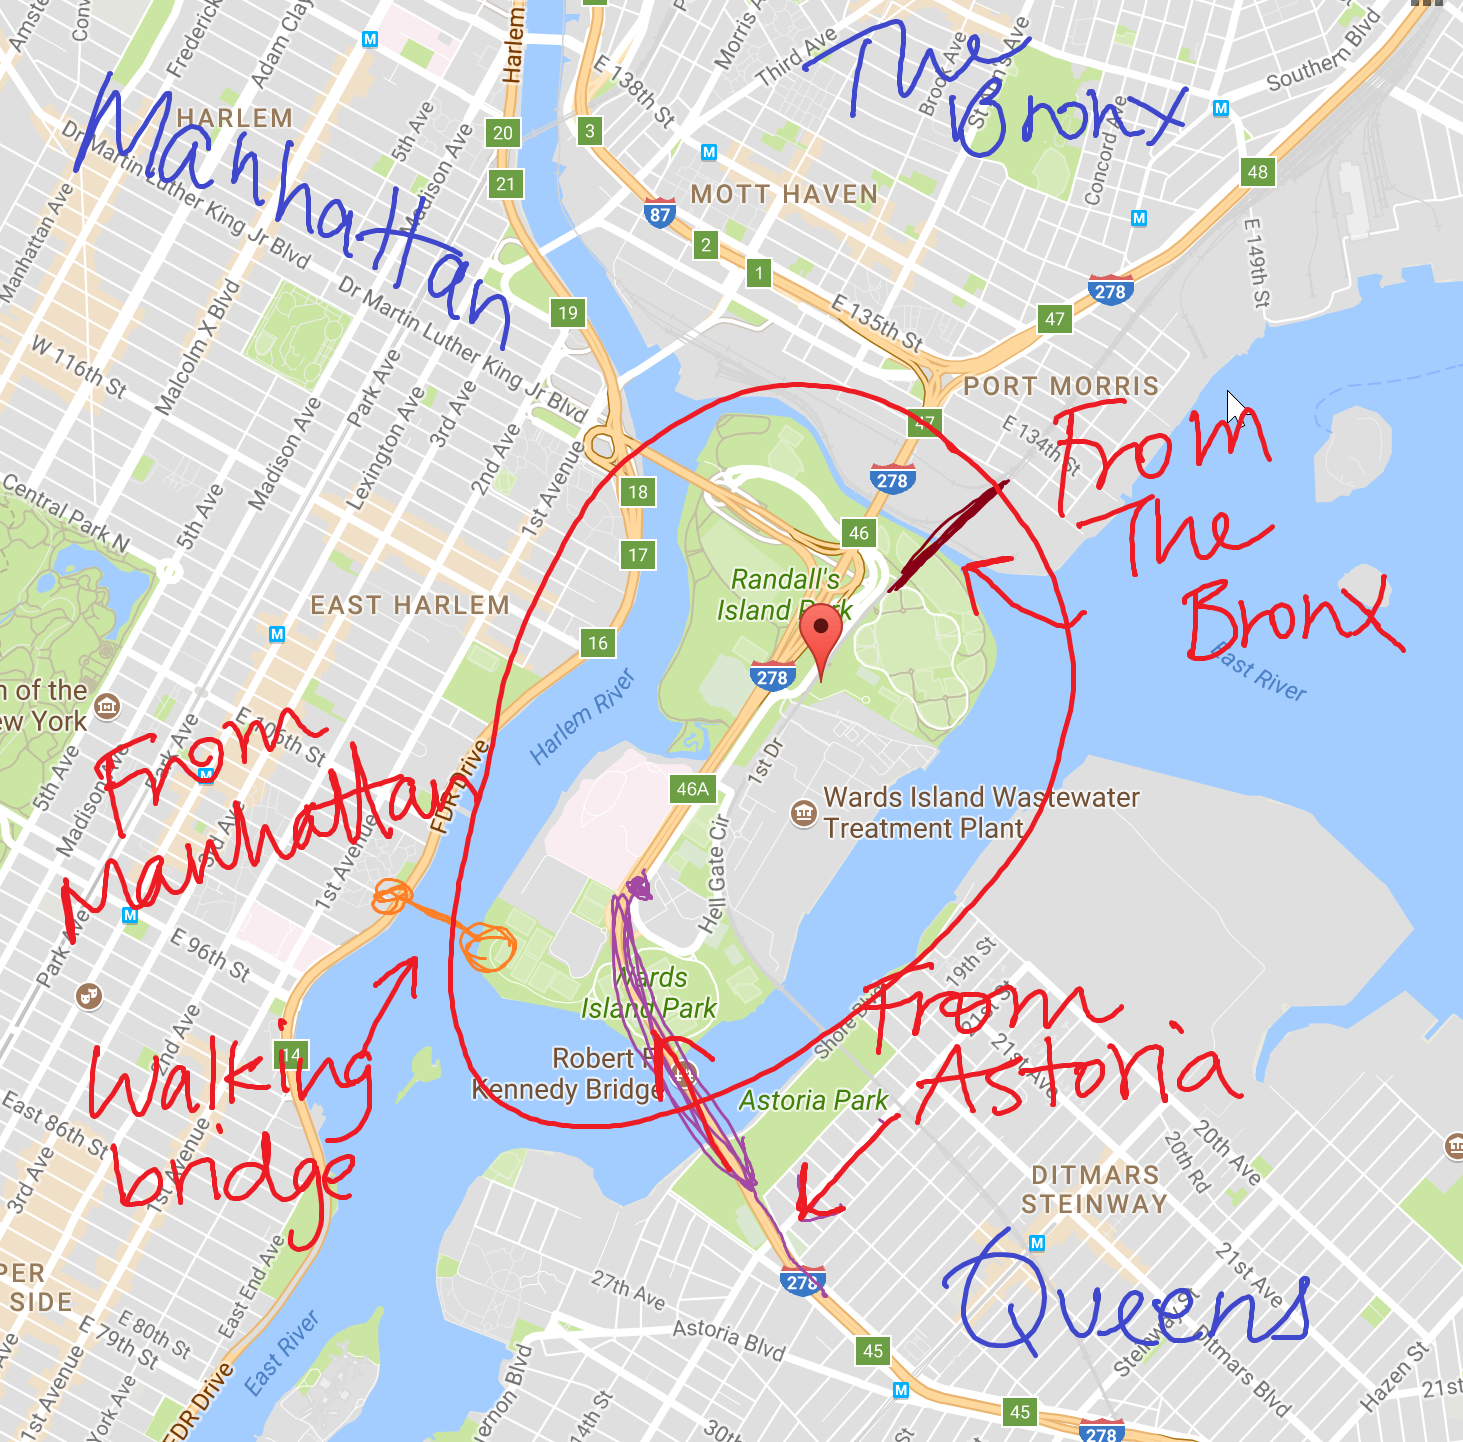 New York City Map Of Attractions.7 Off The Beaten Track Places To Visit In New York City A Pair Of